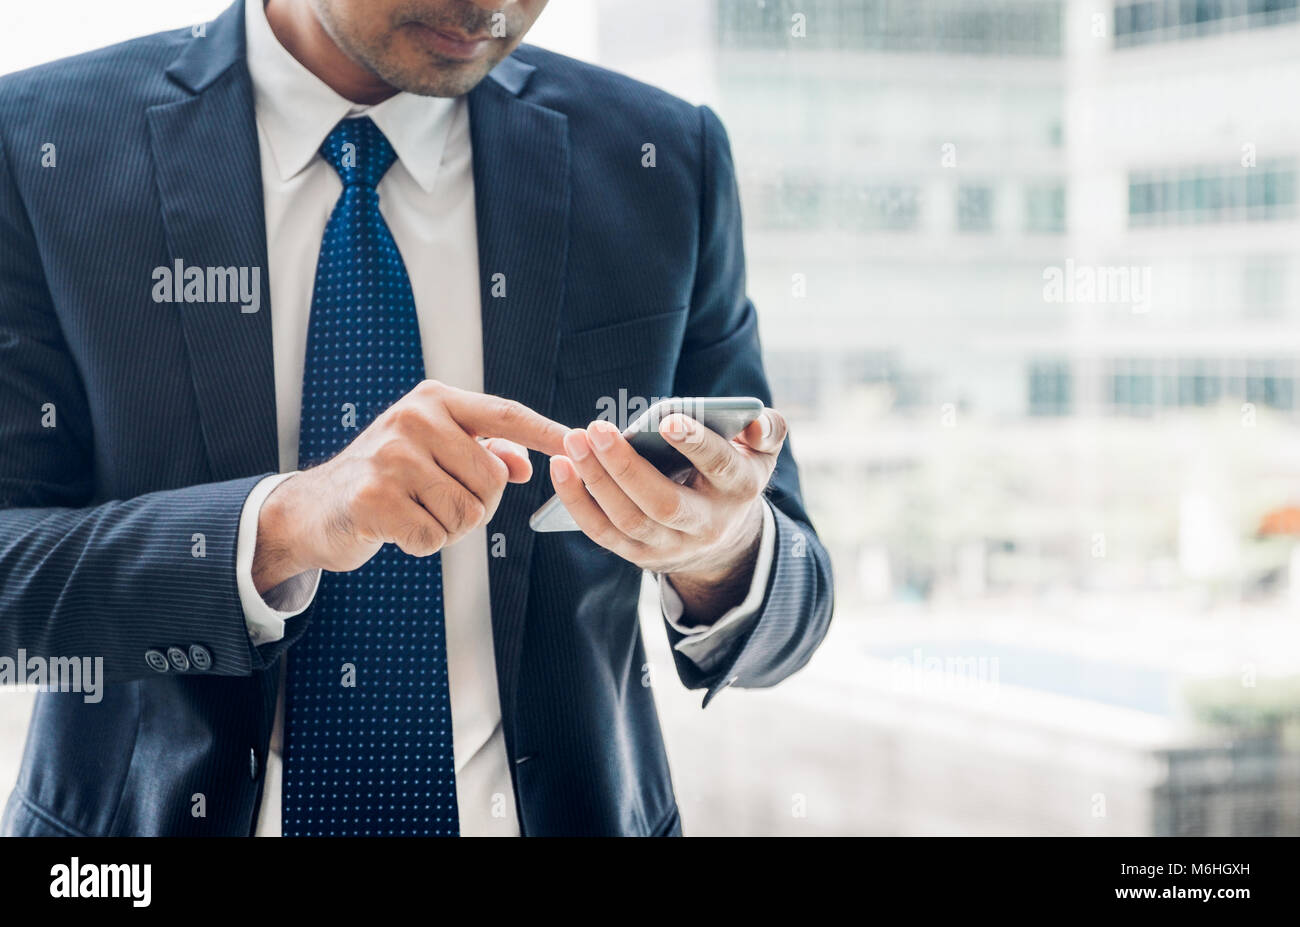 close up hand of businessman using mobile phone near office window at office building,online business concept. Stock Photo